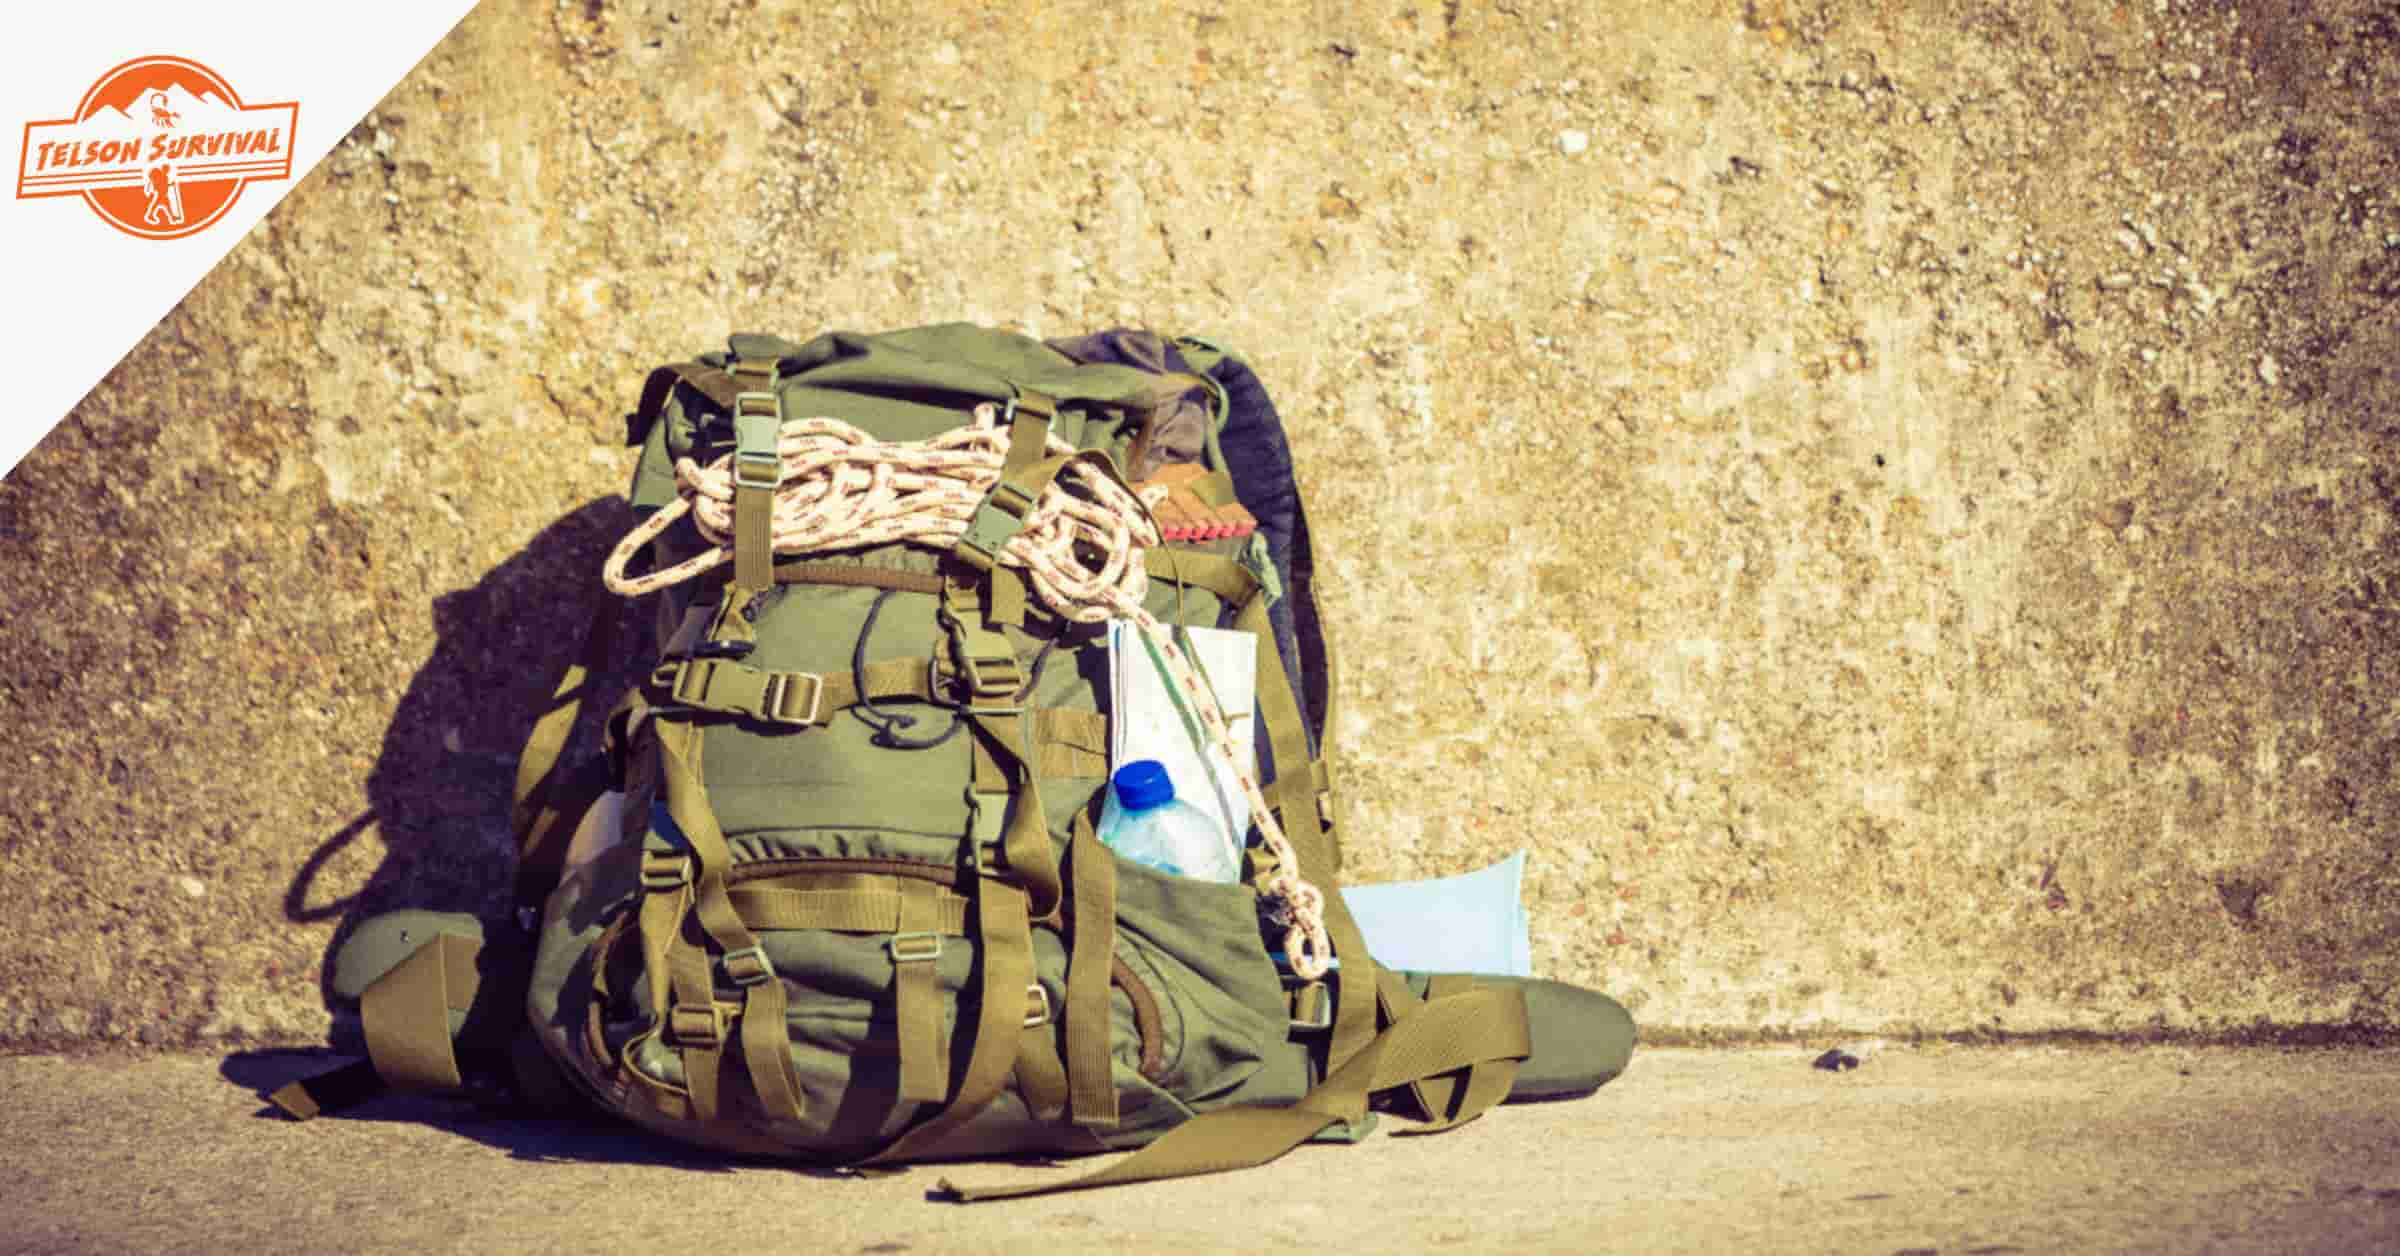 Fully equiped bug out bag next to a wall